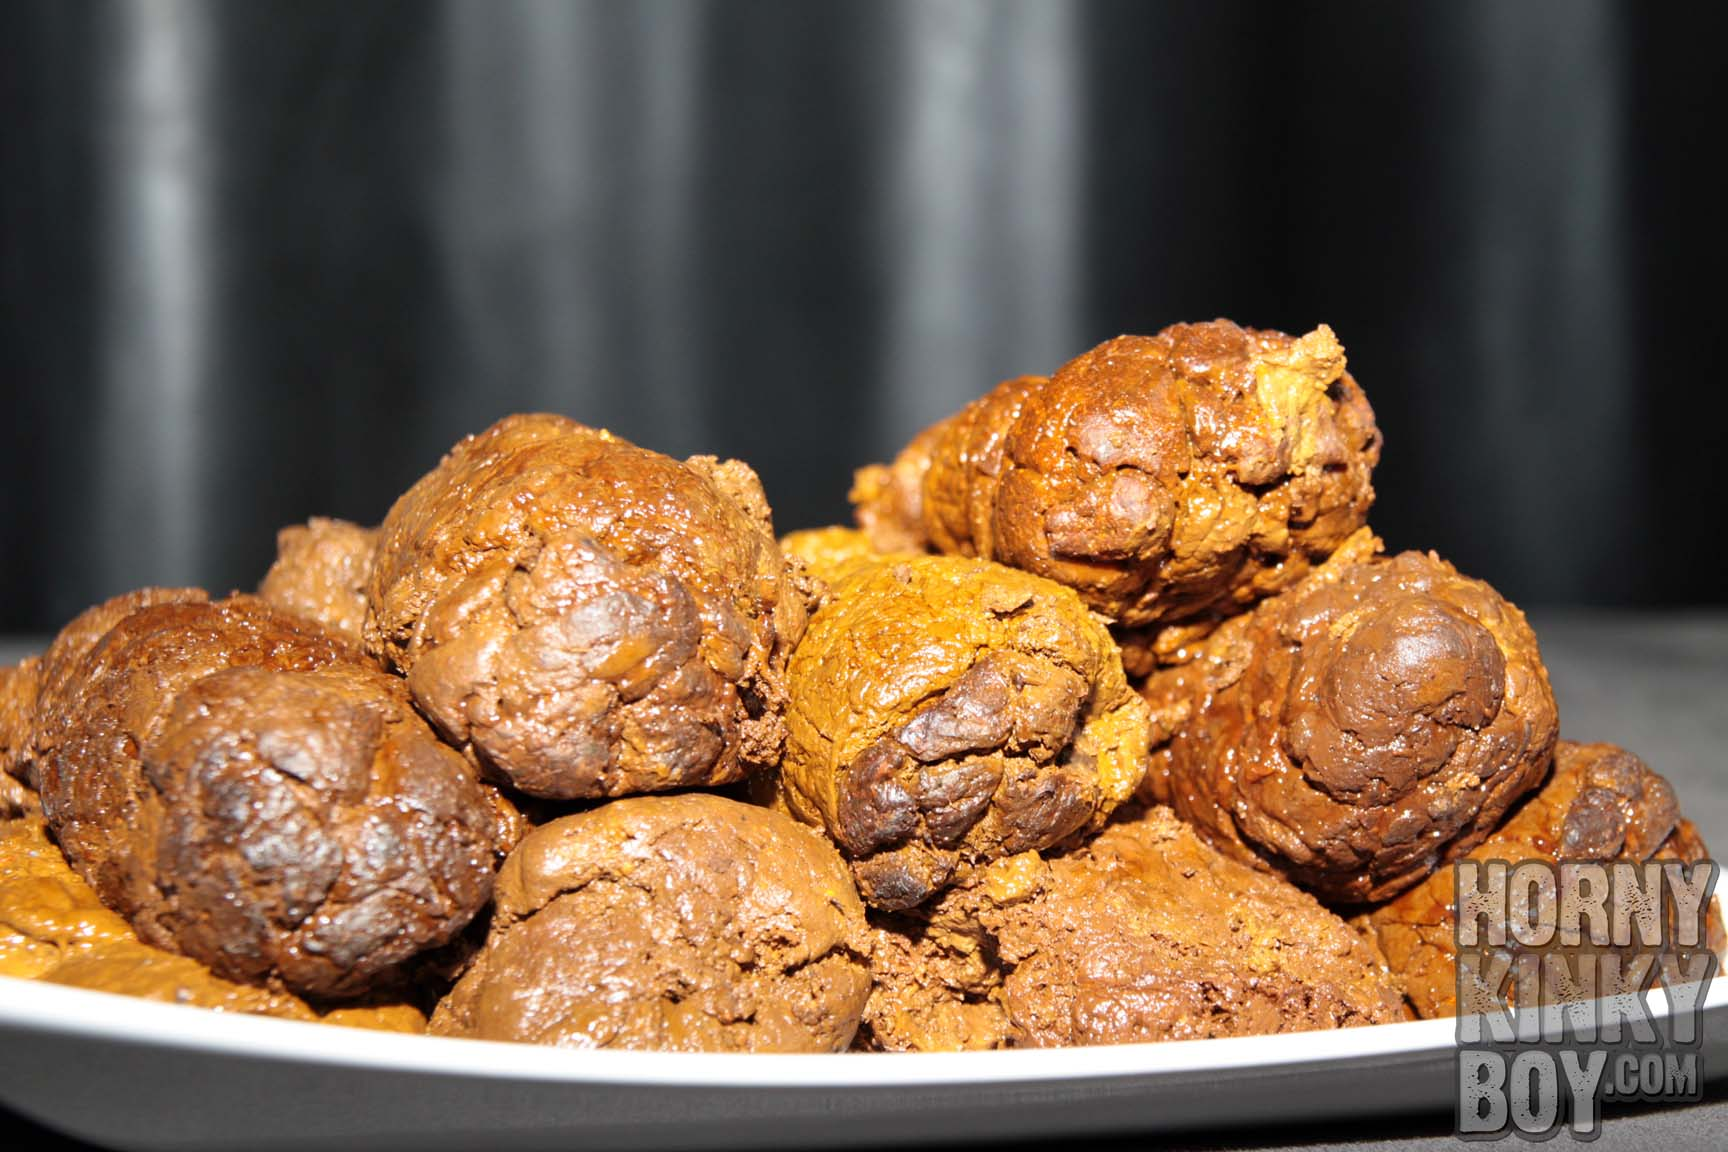 Nine Defrosted Turds on a Plate - hornykinkyboy.com